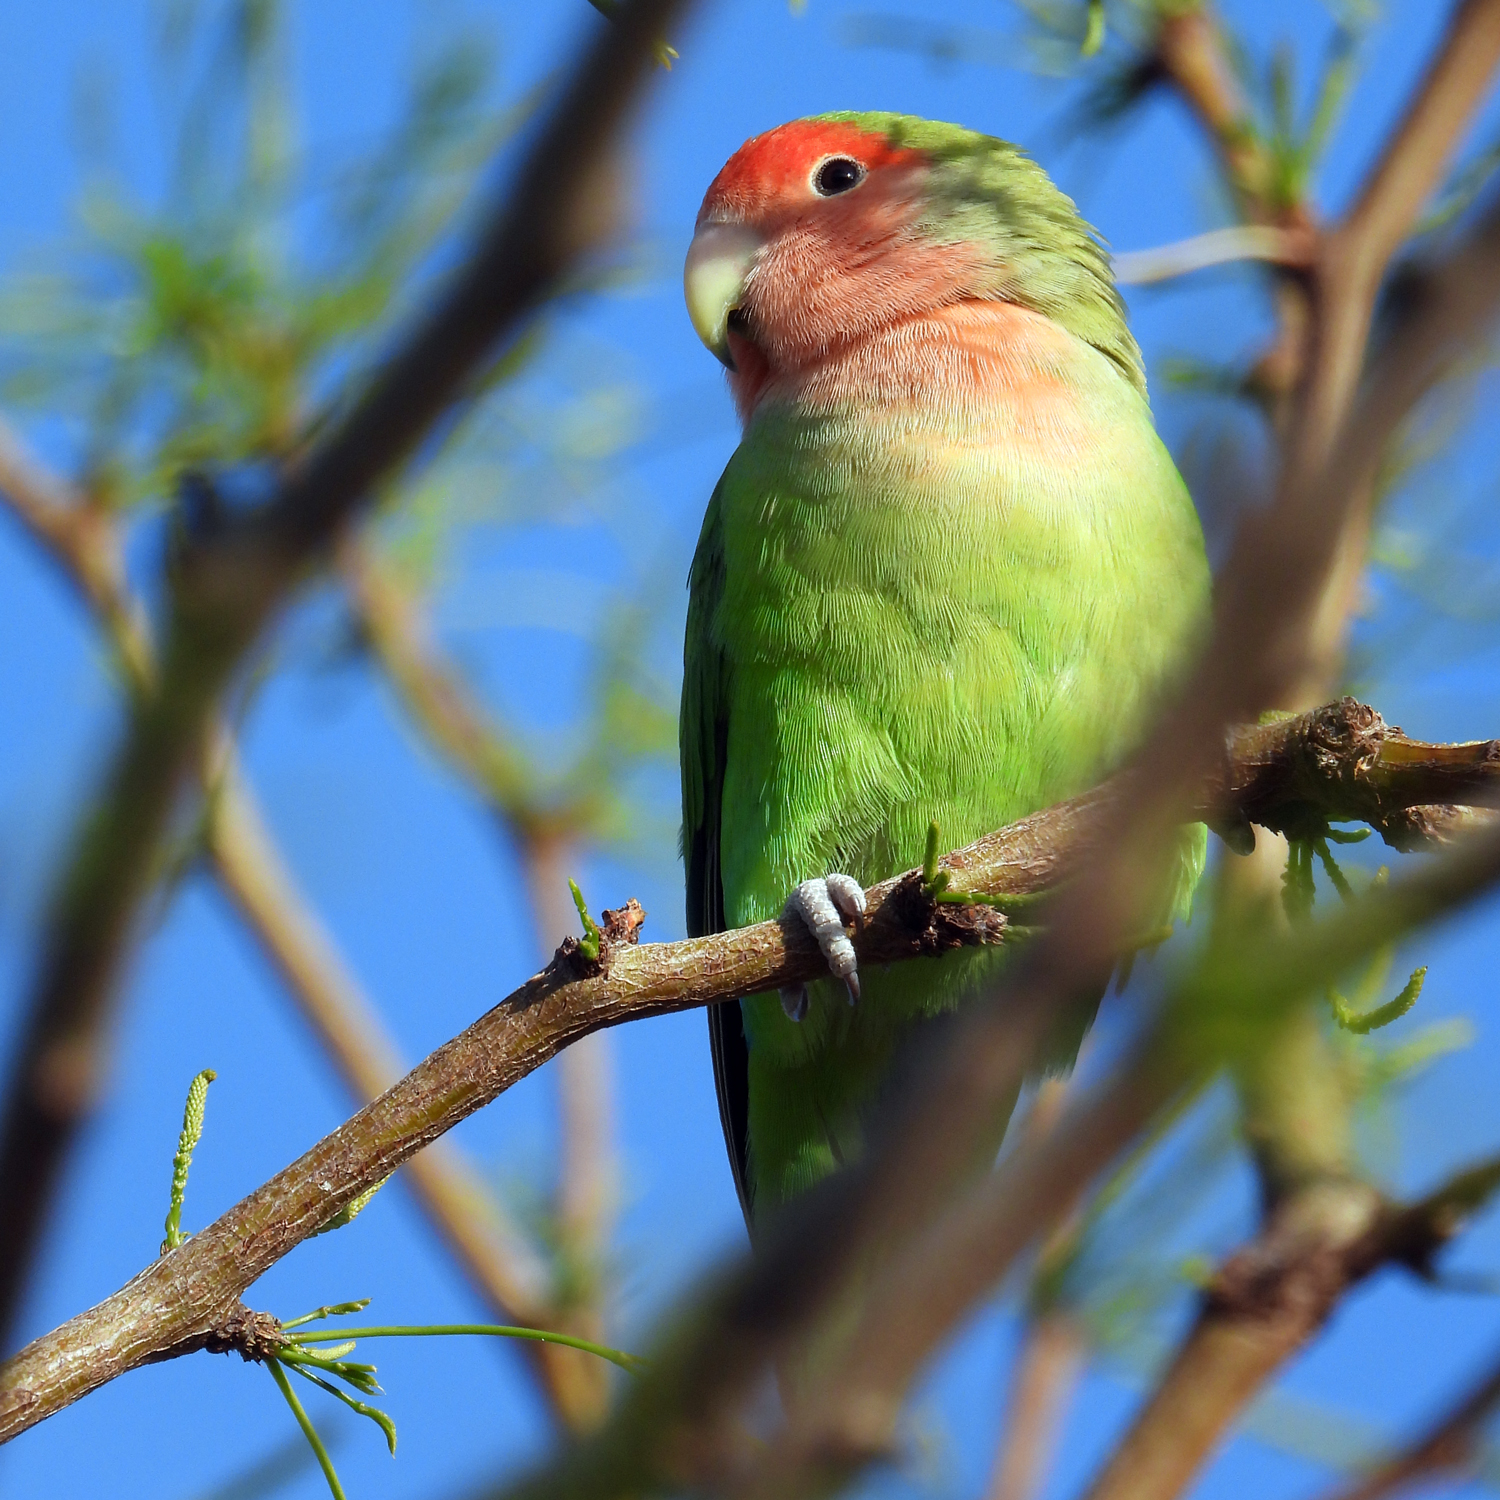 Rose-faced Lovebird